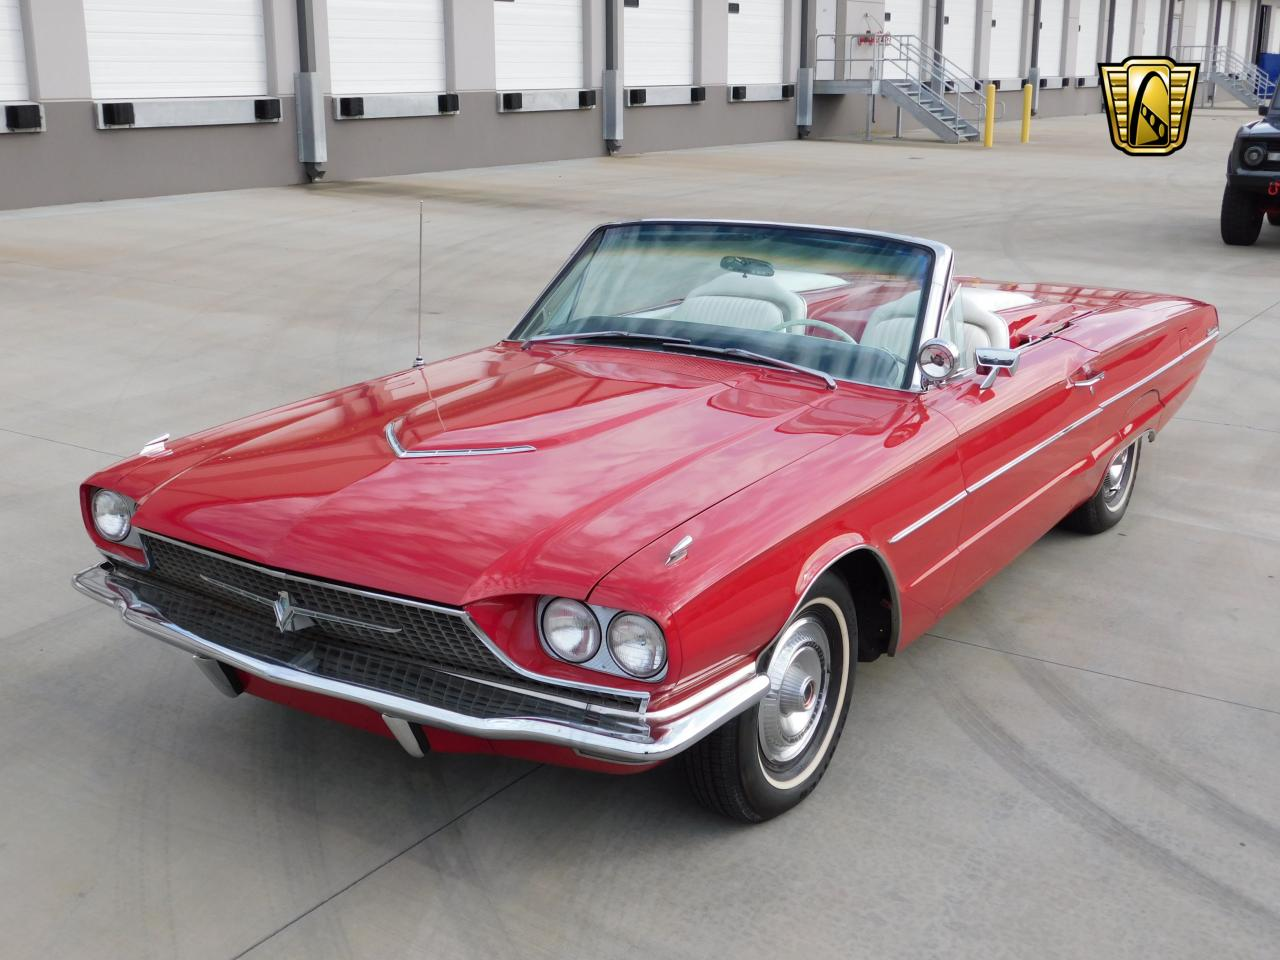 1966 ford thunderbird gateway classic cars 625 atl. Black Bedroom Furniture Sets. Home Design Ideas